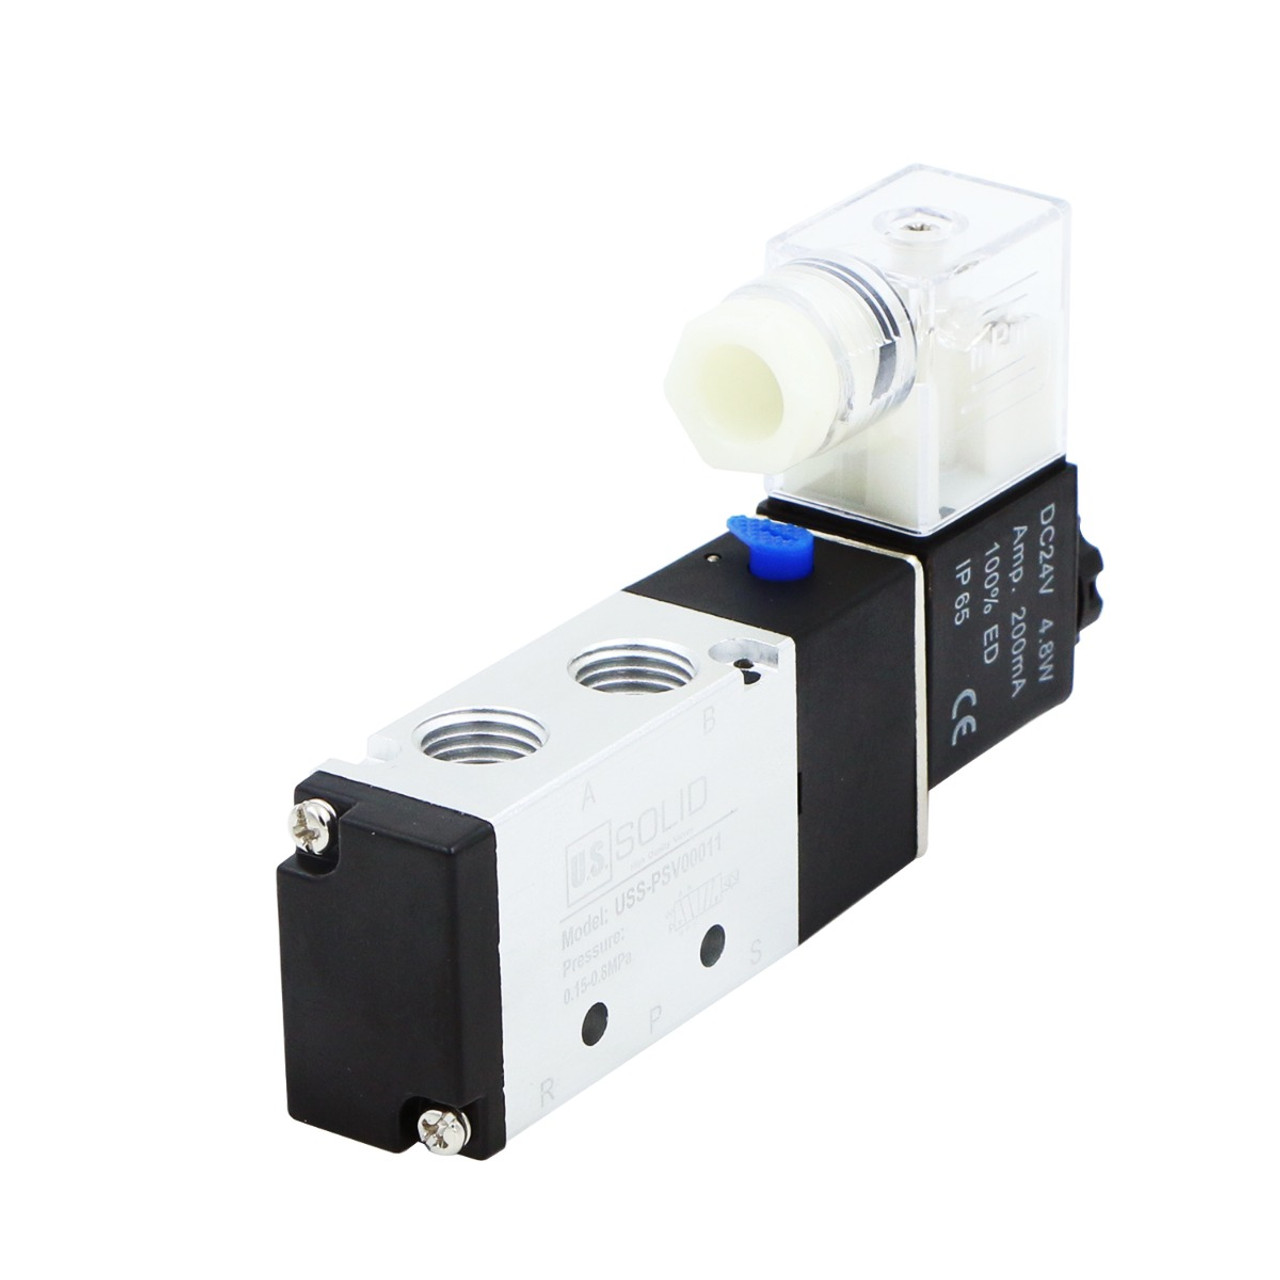 "USSOLID 1/4"" 5 Way 2 Position Pneumatic Electric Solenoid Valve DC 24 V"